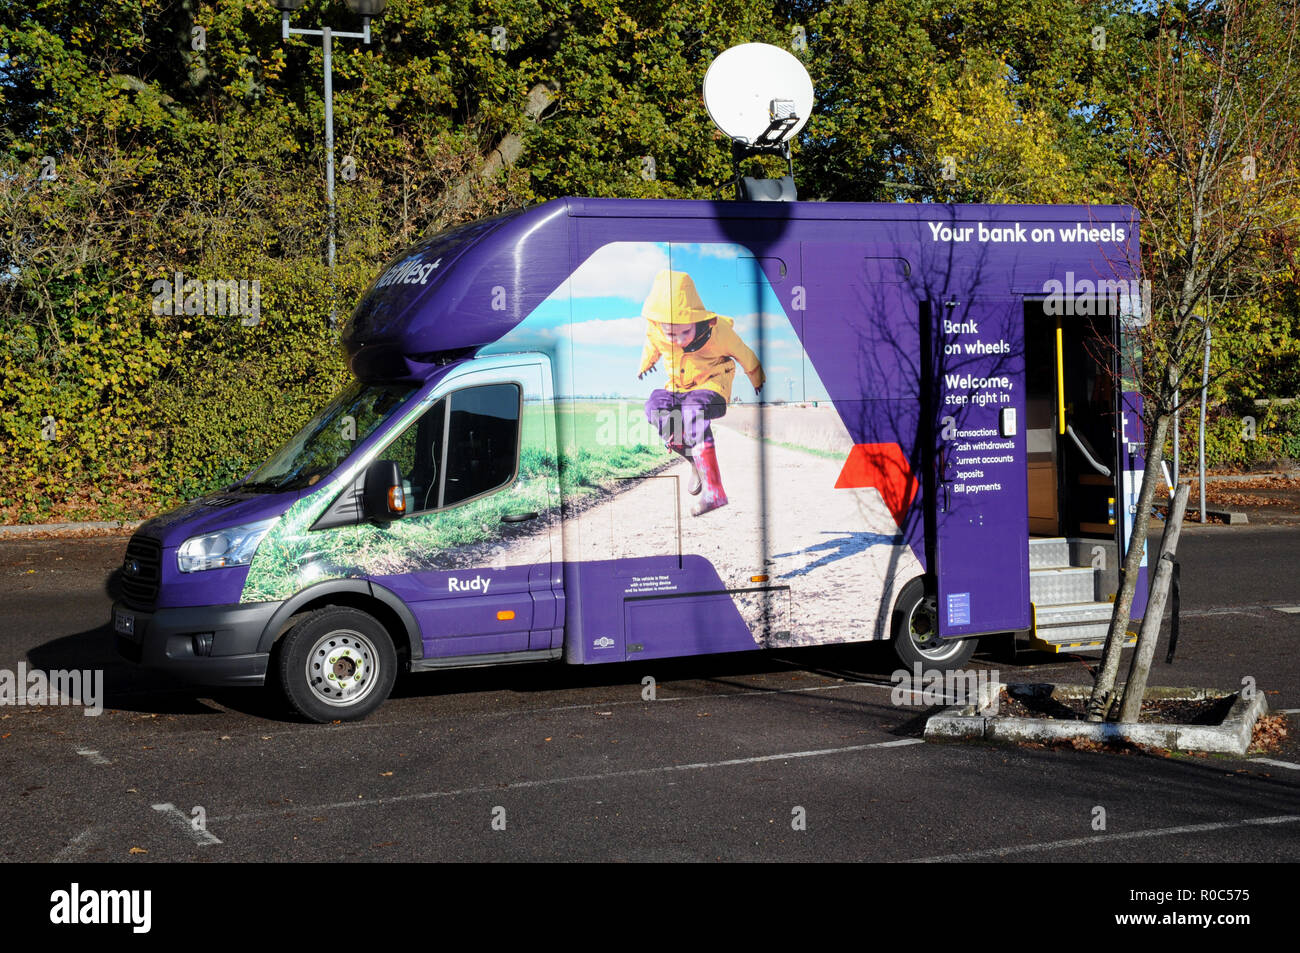 Natwest Bank's answer to the closure of some of its local branches in East Sussex. This mobile banking service calls once a week. - Stock Image